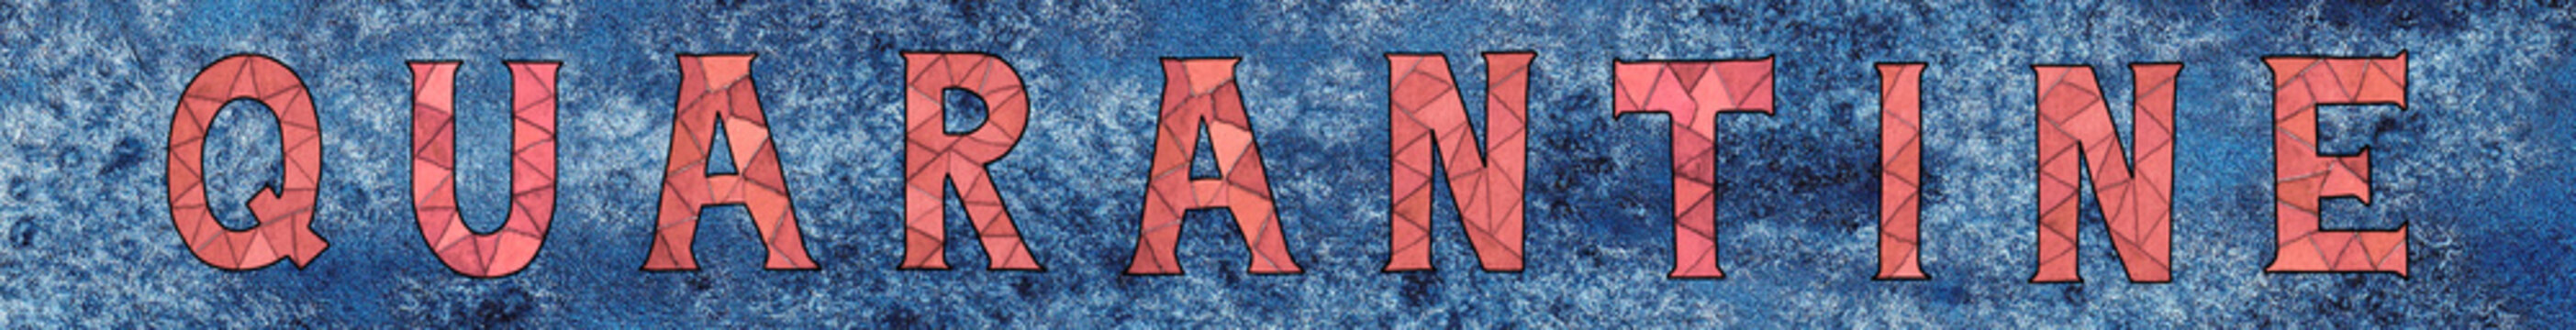 Quarantine, hand painted watercolor banner with red mosaic letters on dark blue background